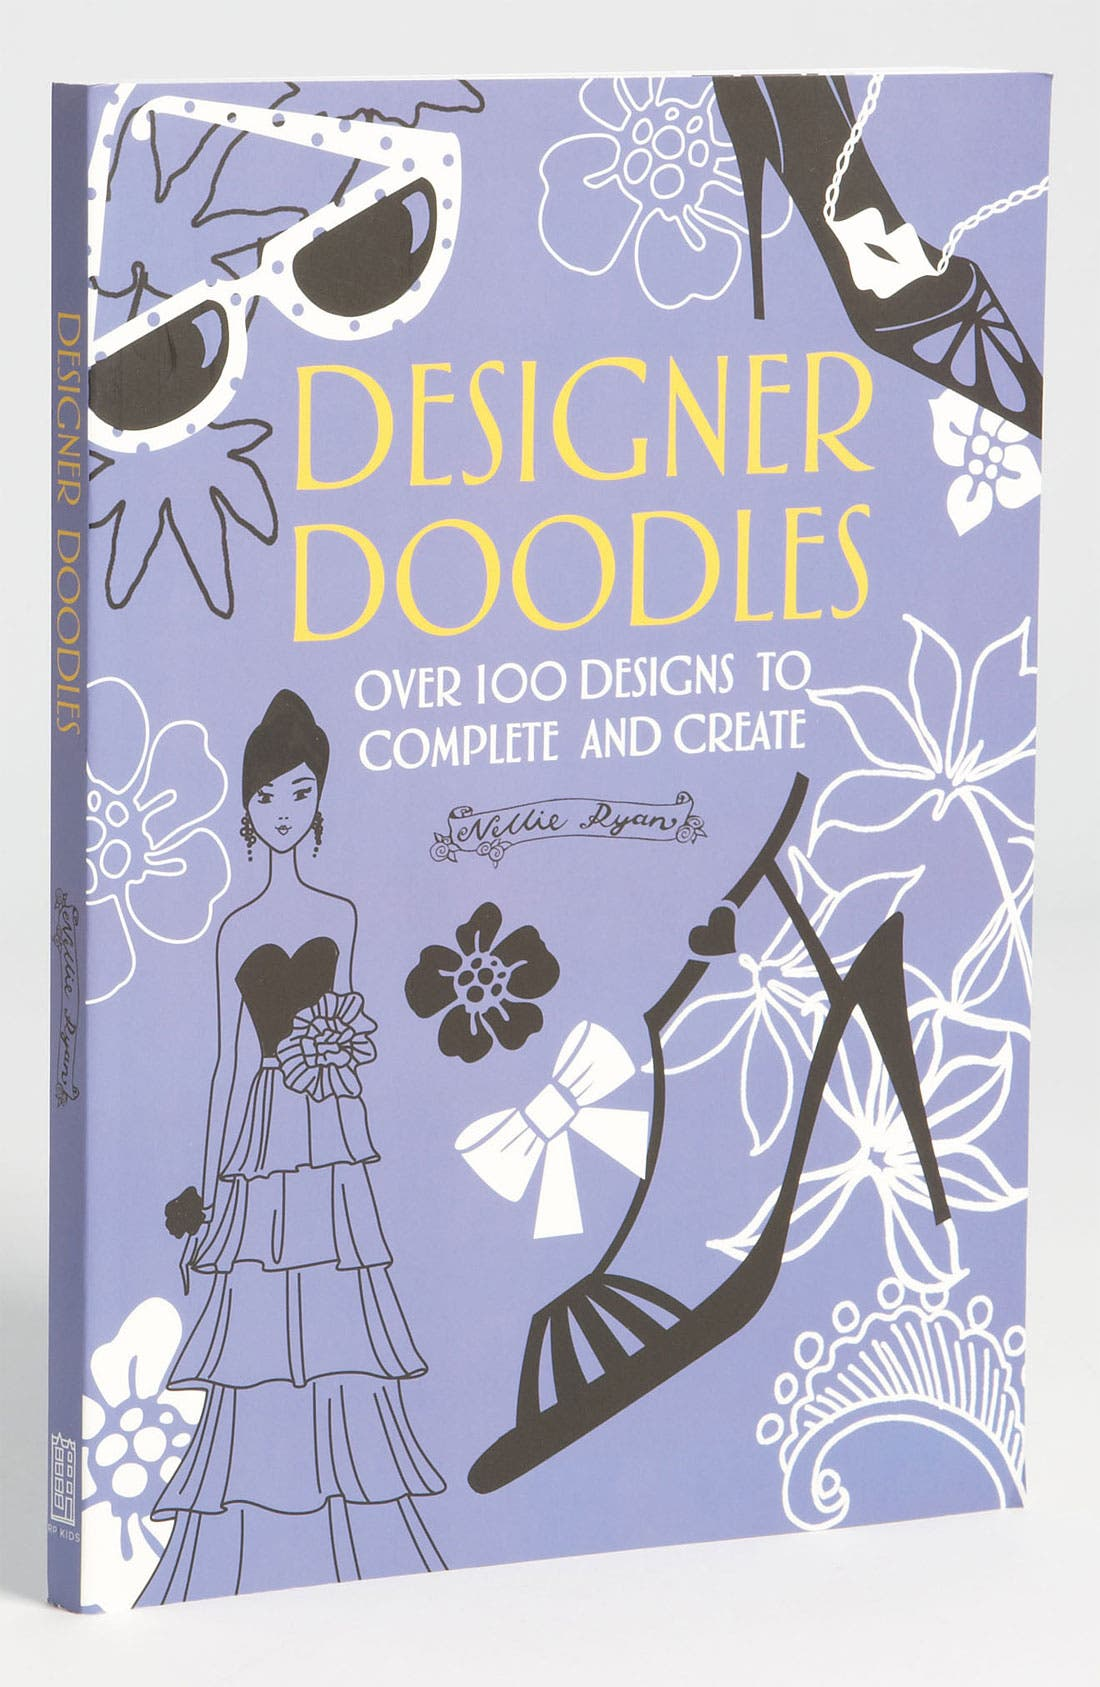 Alternate Image 1 Selected - Nellie Ryan 'Designer Doodles' Book (Girls)